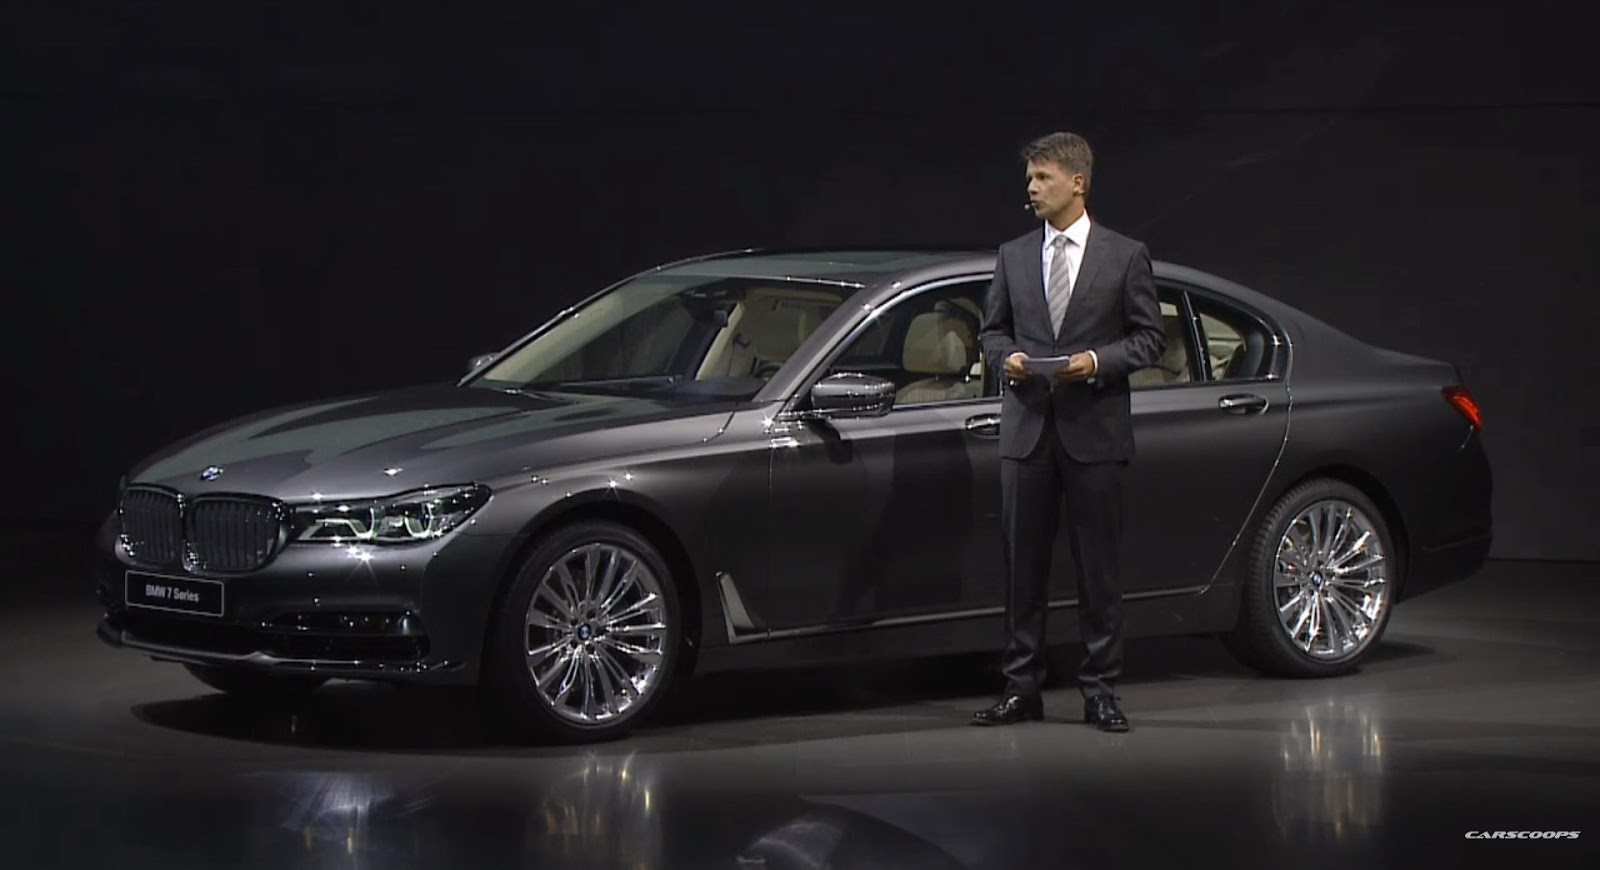 Watch The 2016 BMW 7 Series Reveal Here At 1250PM EST